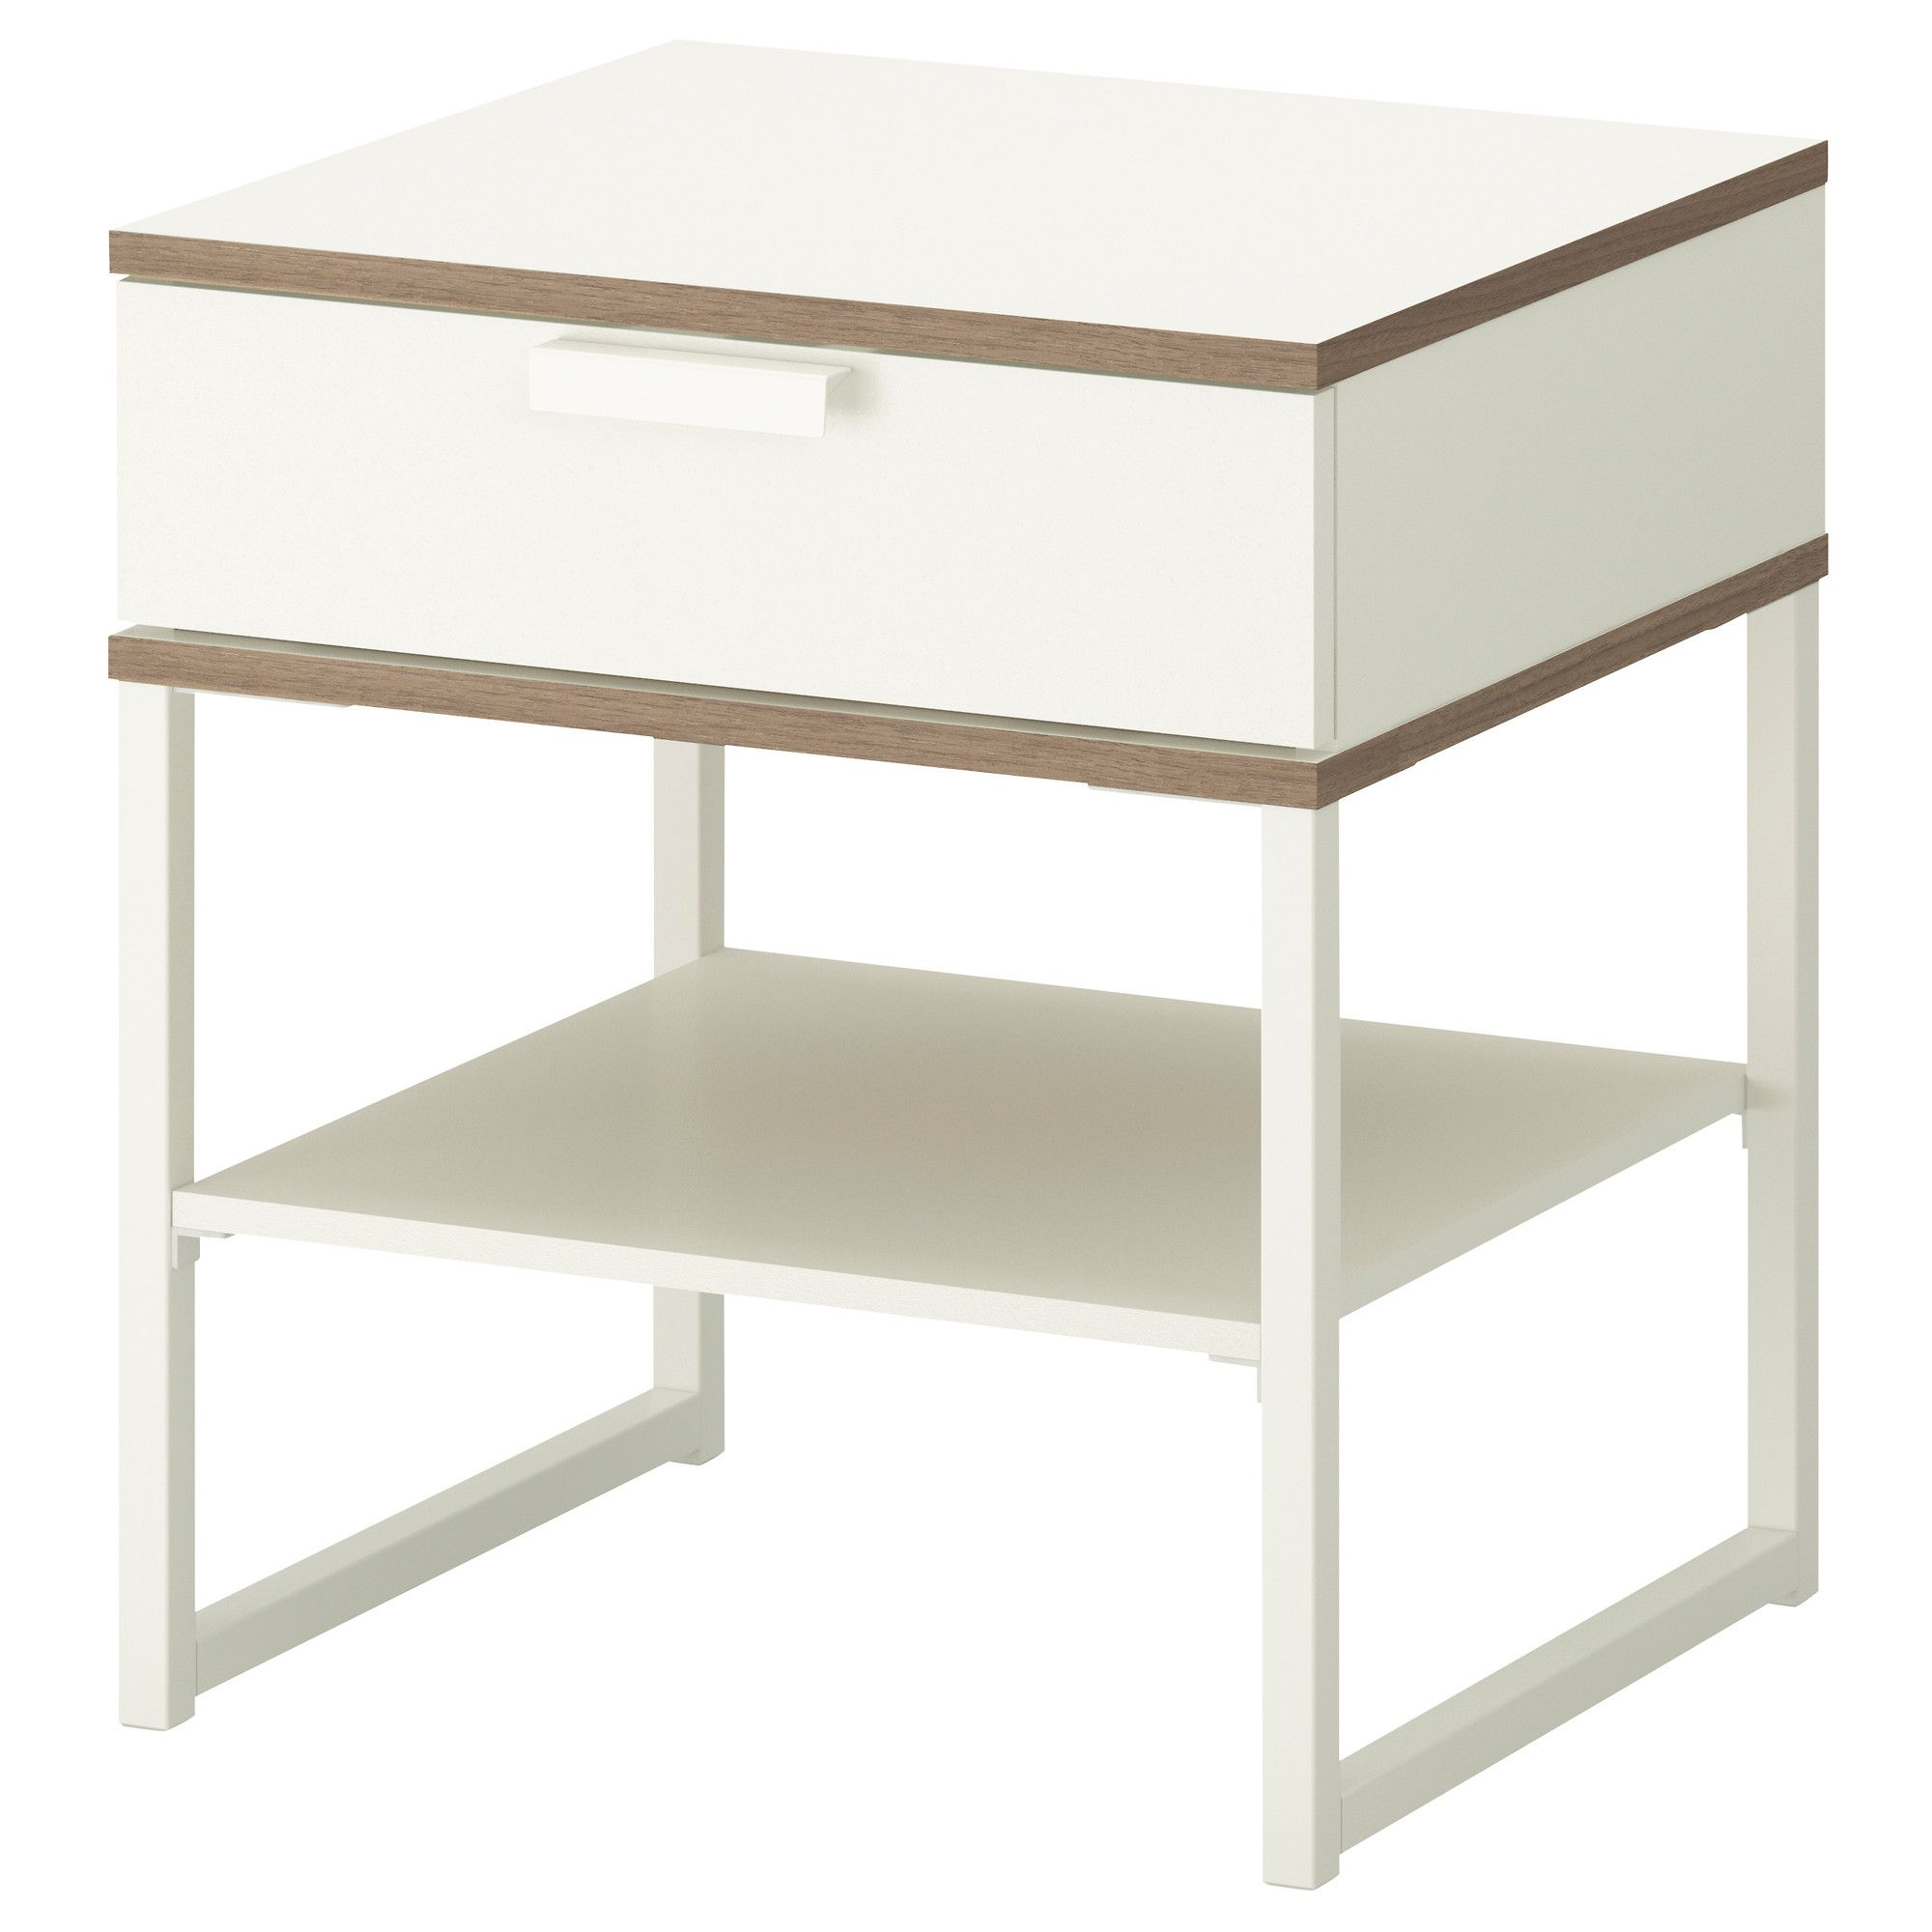 Tables De Chevet Blanches Table Chevet Trysil Blanc Gris Clair Messidor Chambre Table